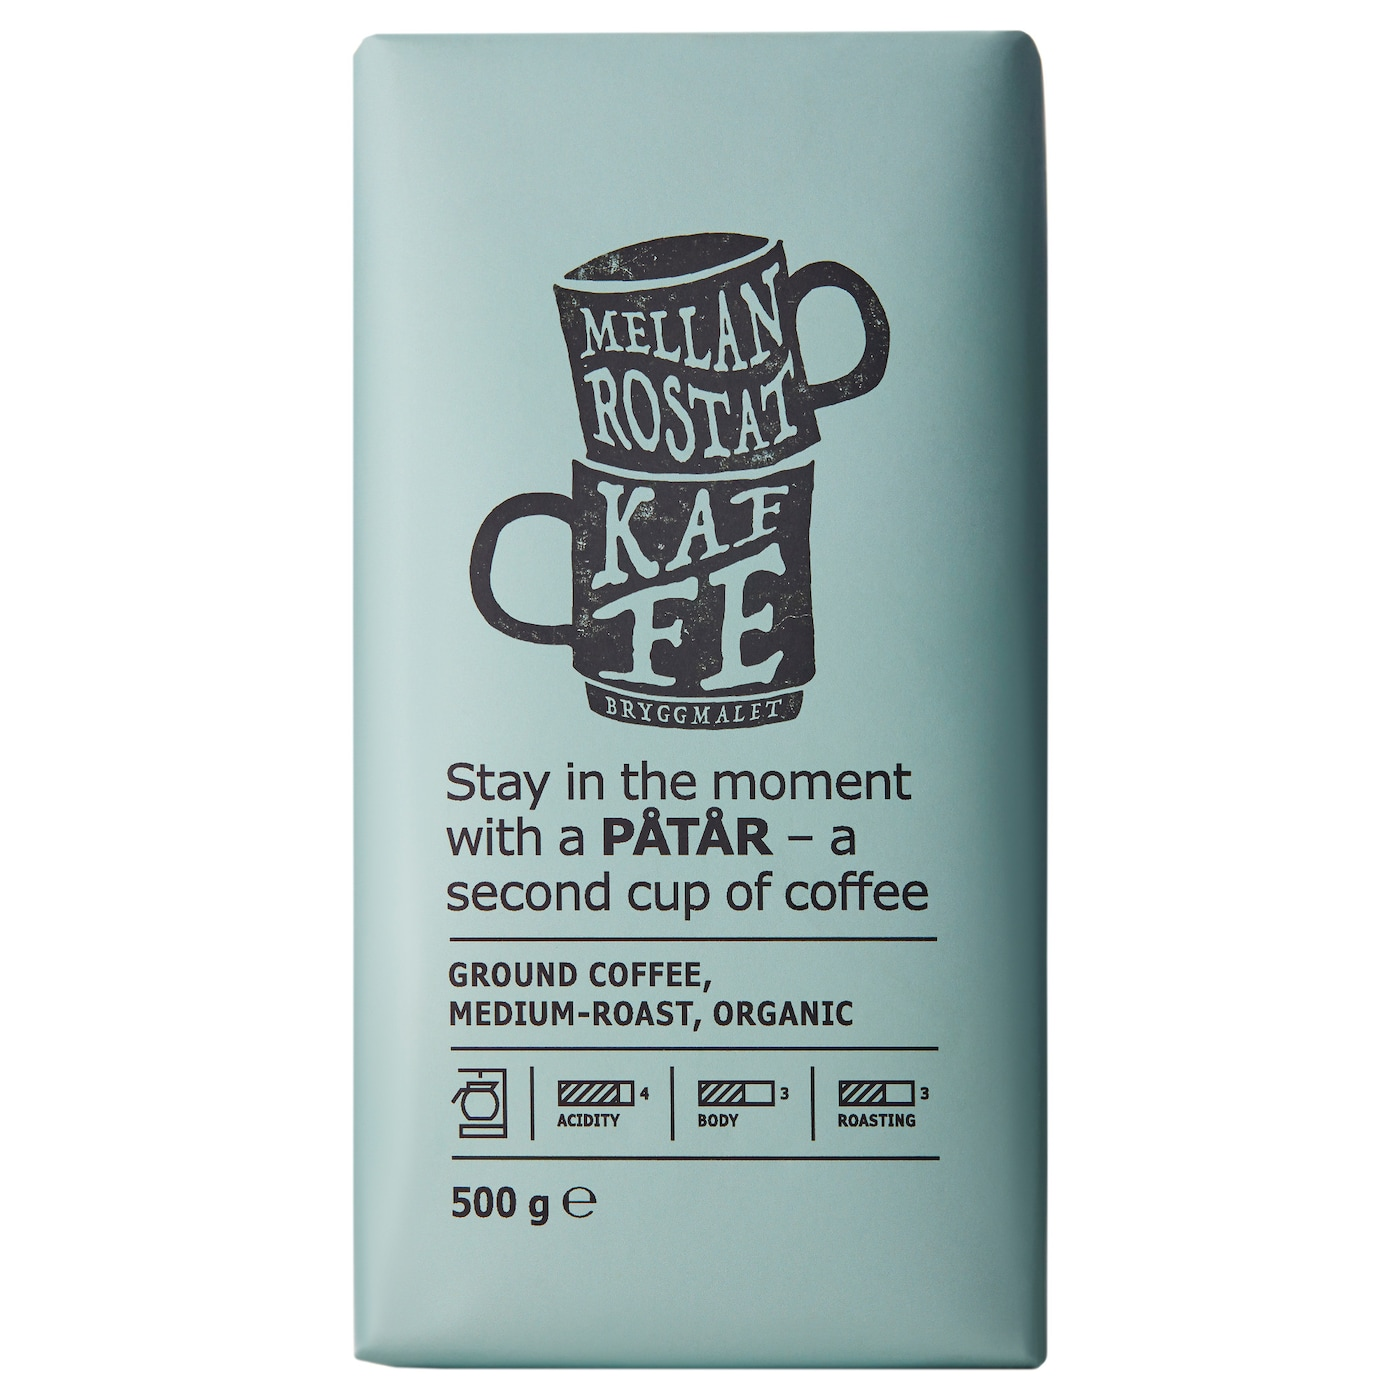 IKEA PÅTÅR filter coffee, medium roast